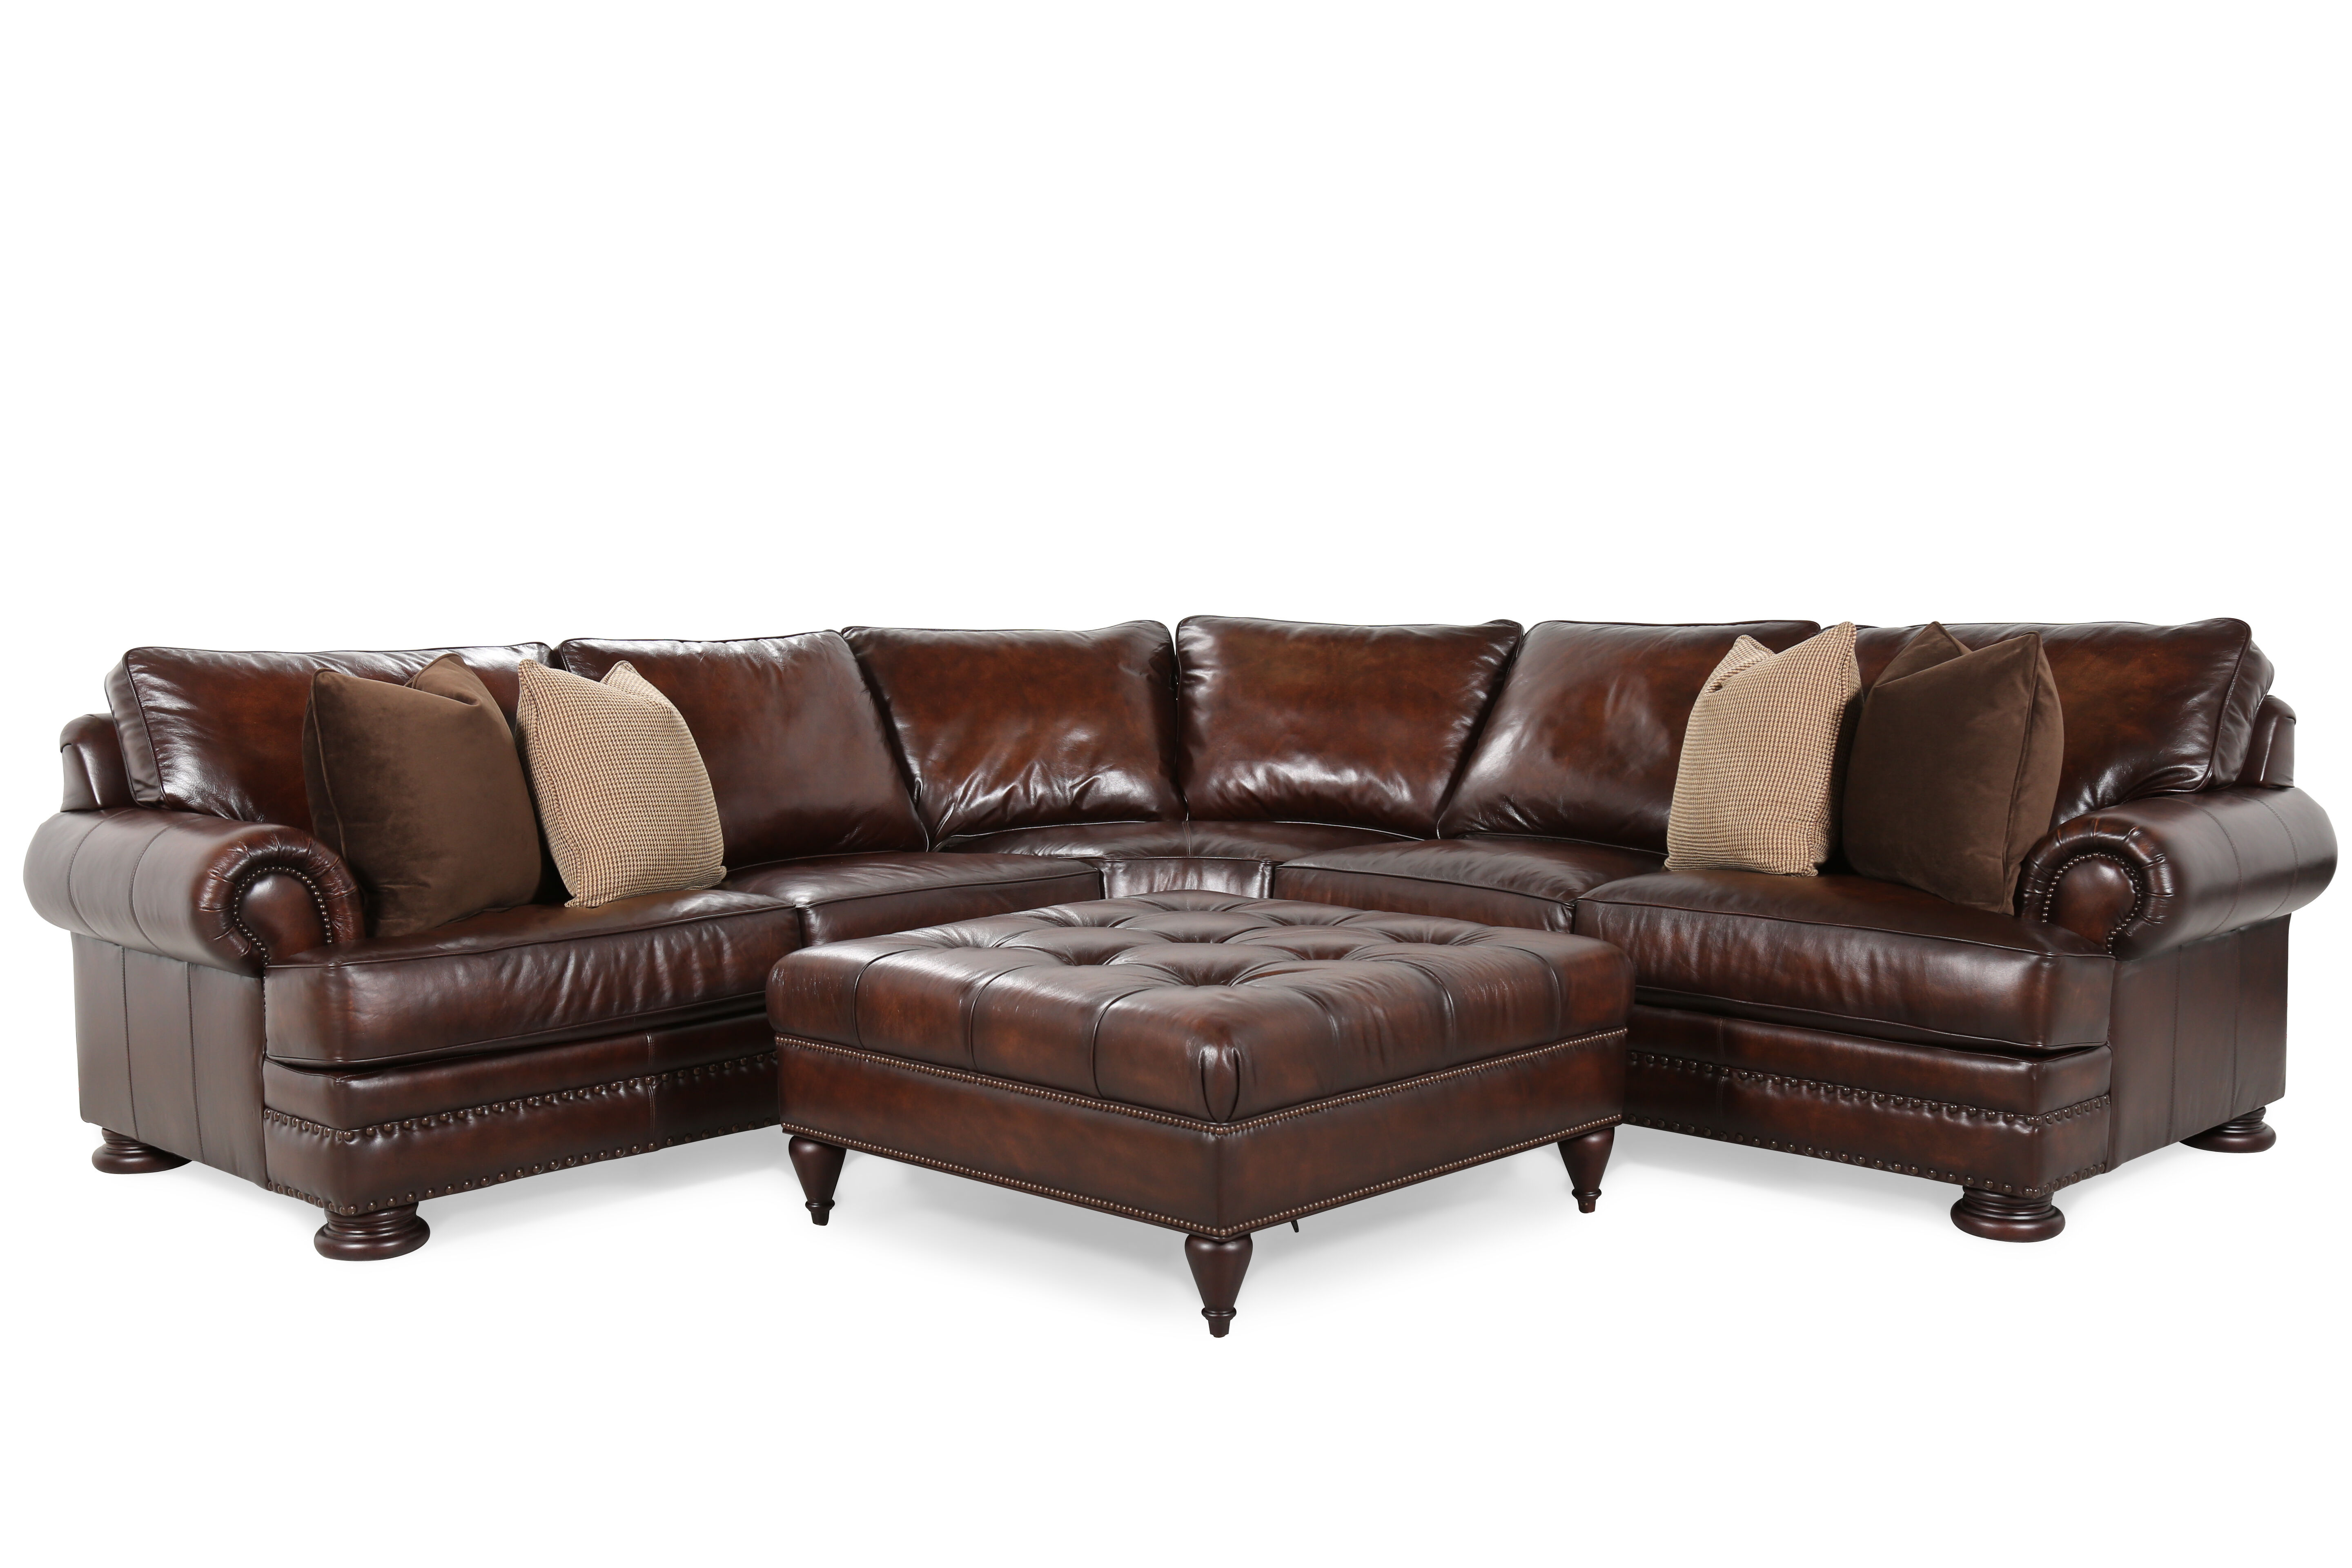 Bernhardt Foster Two-Piece Sectional with Ottoman  sc 1 st  Mathis Brothers : bernhardt foster sectional - Sectionals, Sofas & Couches